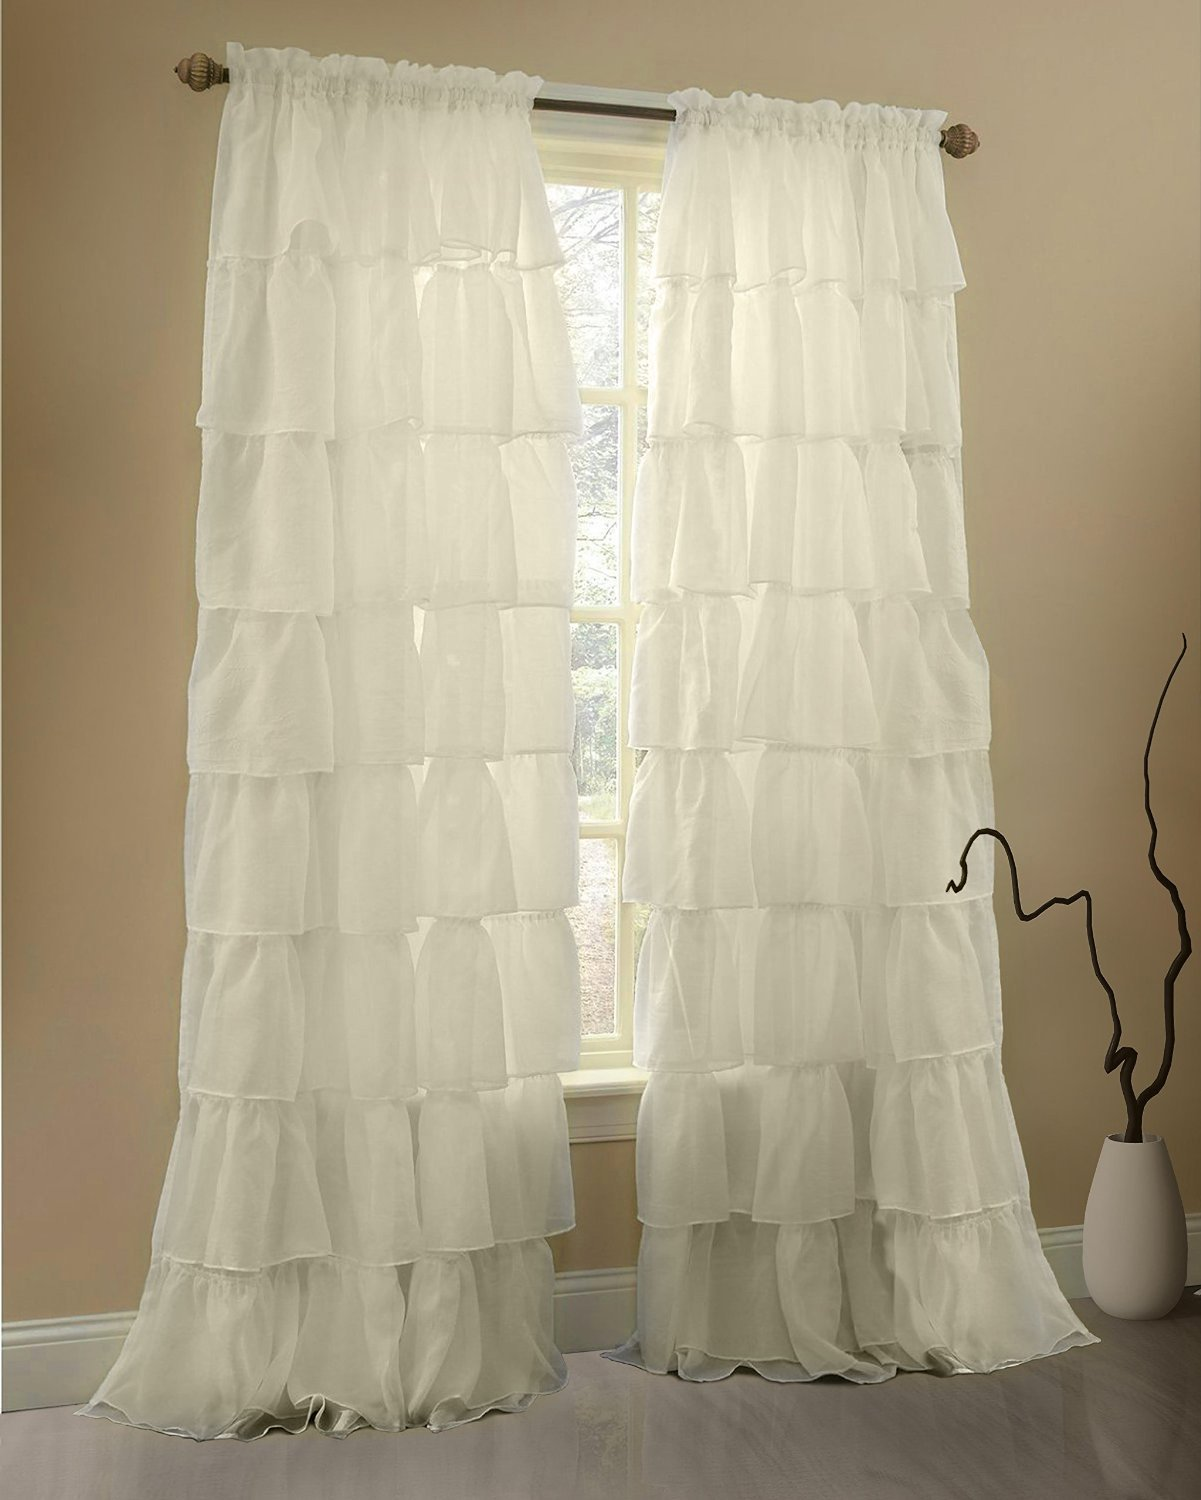 Buy Gee Di Moda Ruffle Curtains Rod Pocket Window Curtains